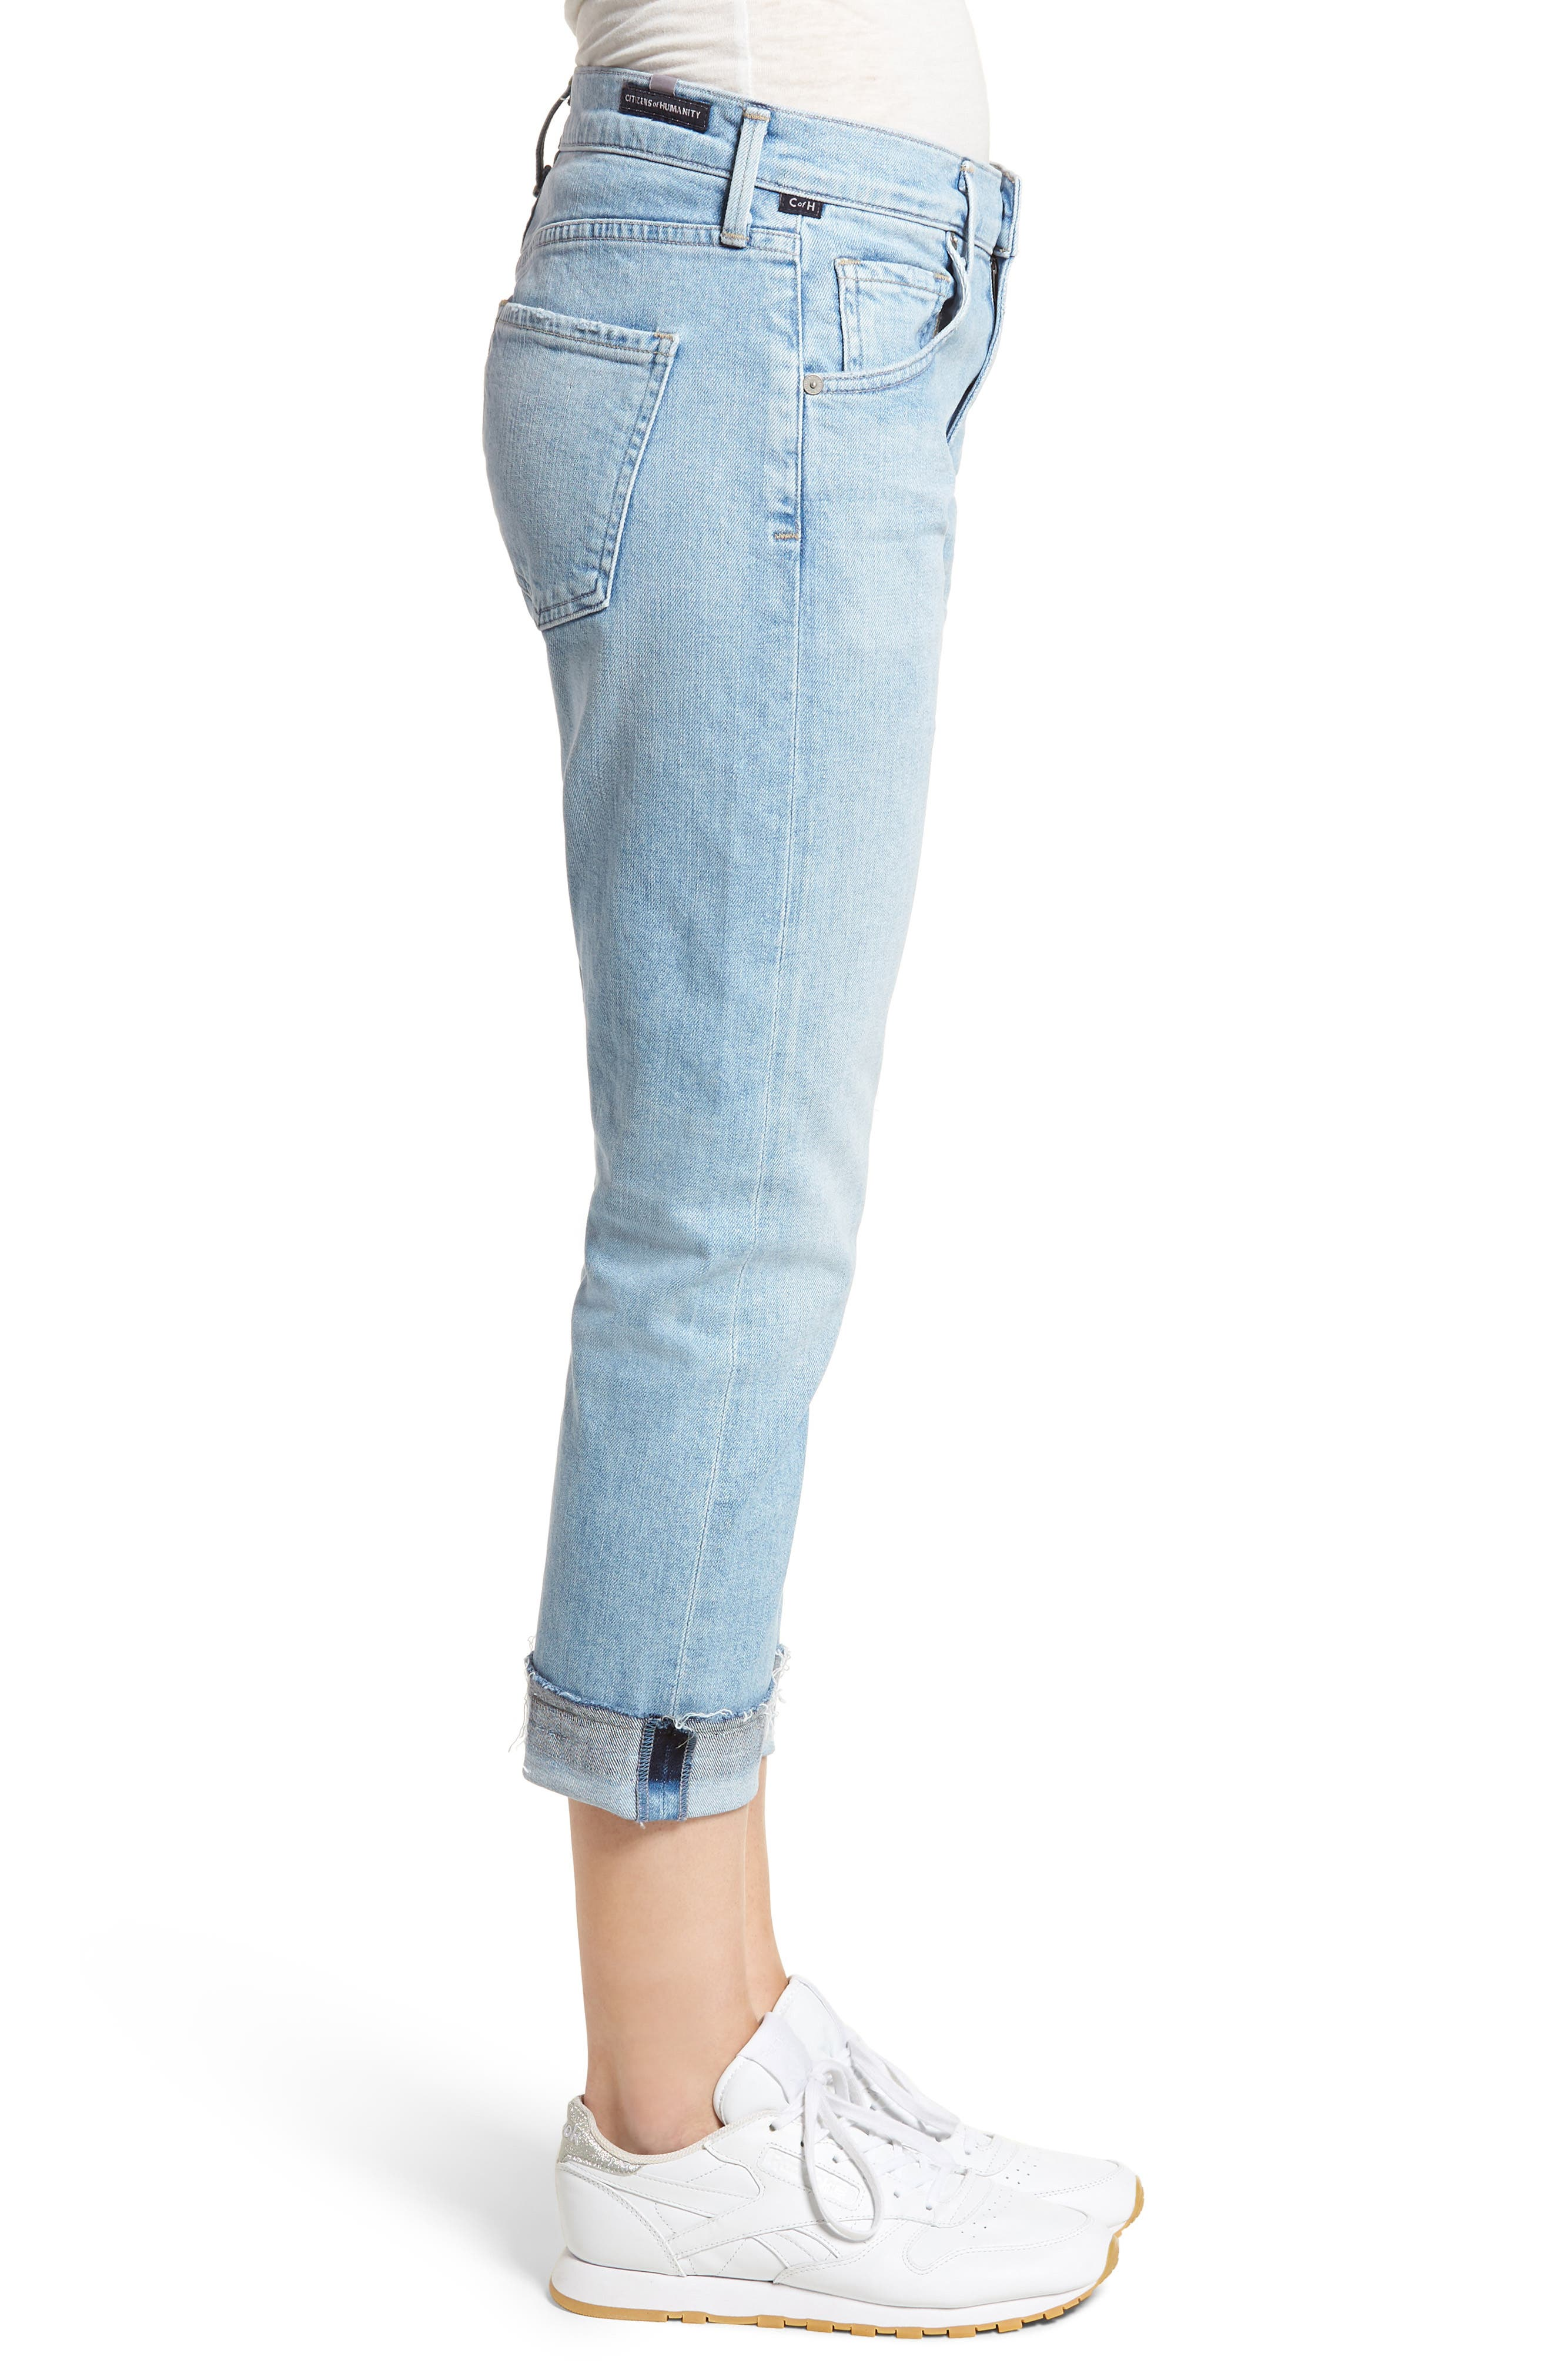 CITIZENS OF HUMANITY,                             Emerson Ripped Crop Slim Boyfriend Jeans,                             Alternate thumbnail 3, color,                             455